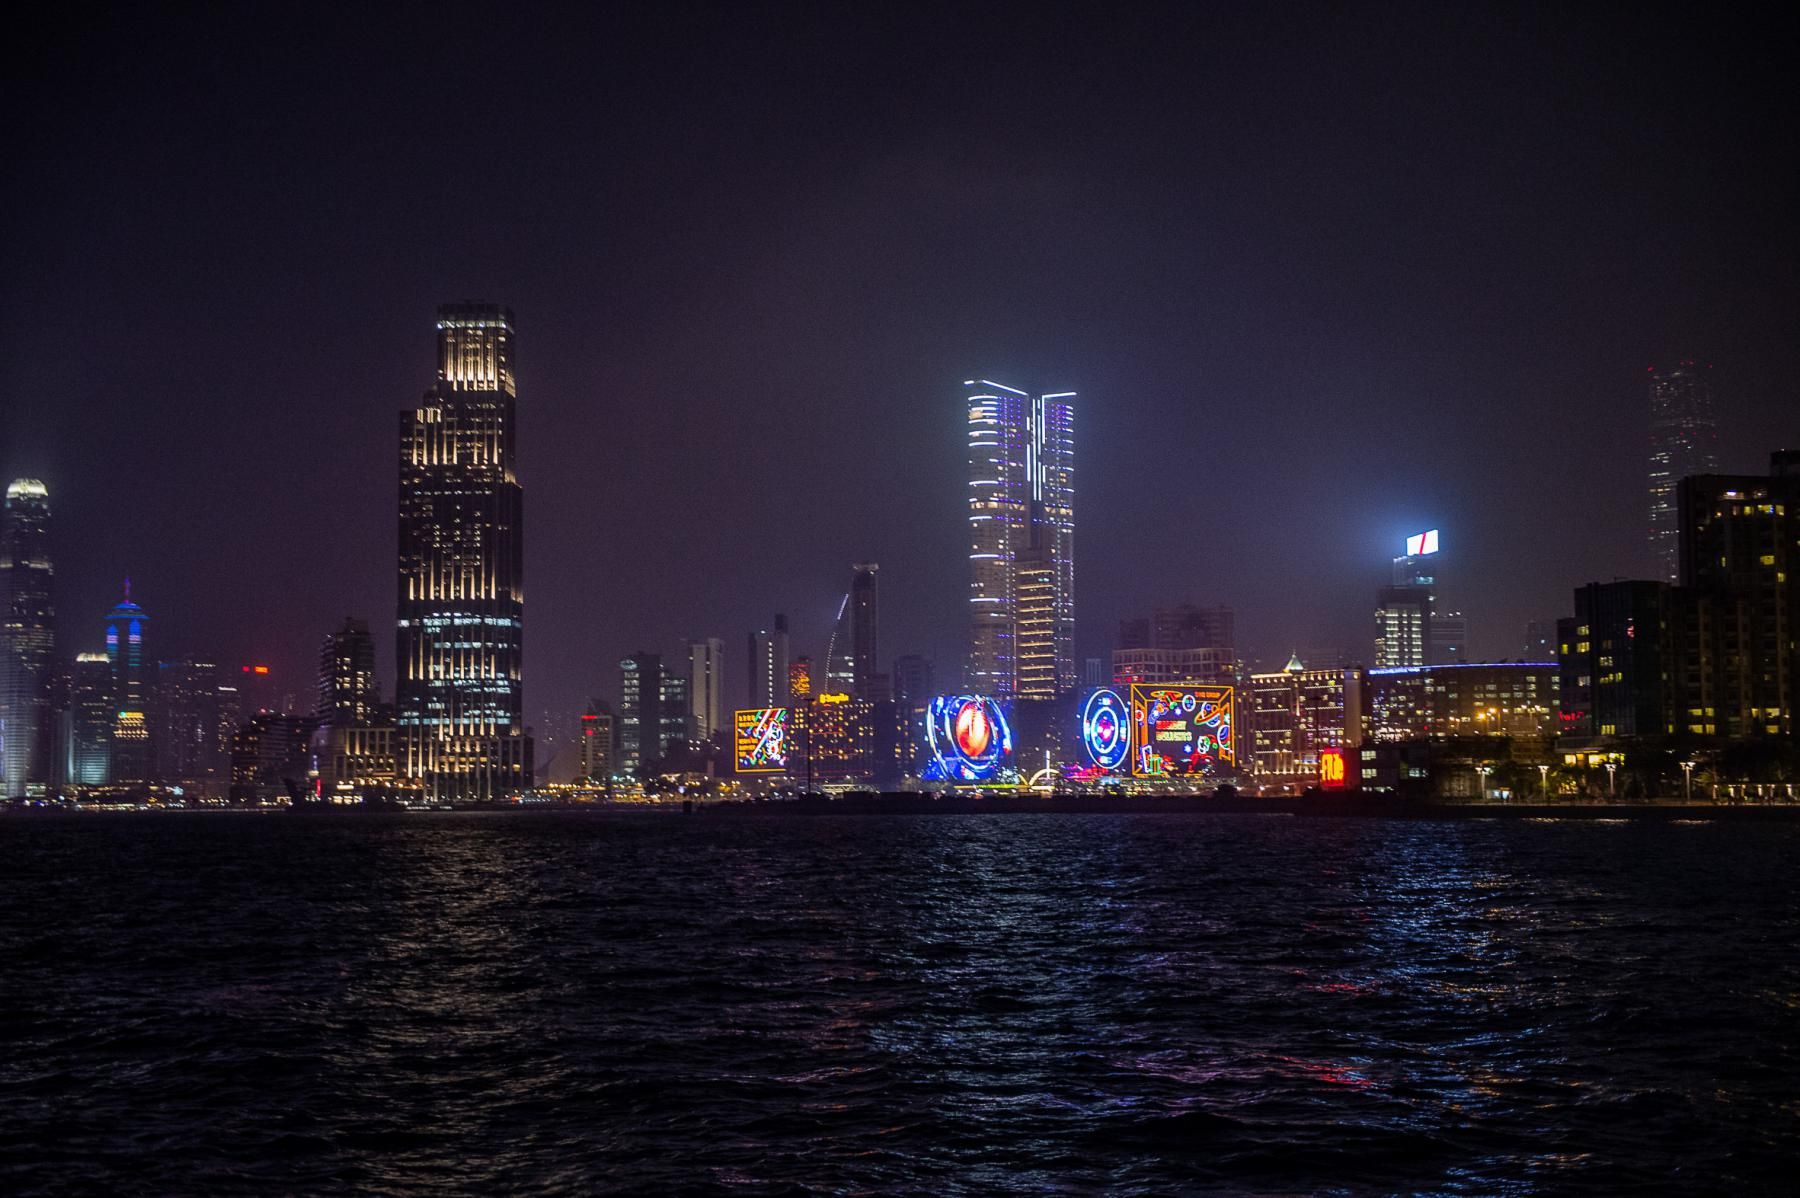 Photo Skyline nocturne sur Hong kong island